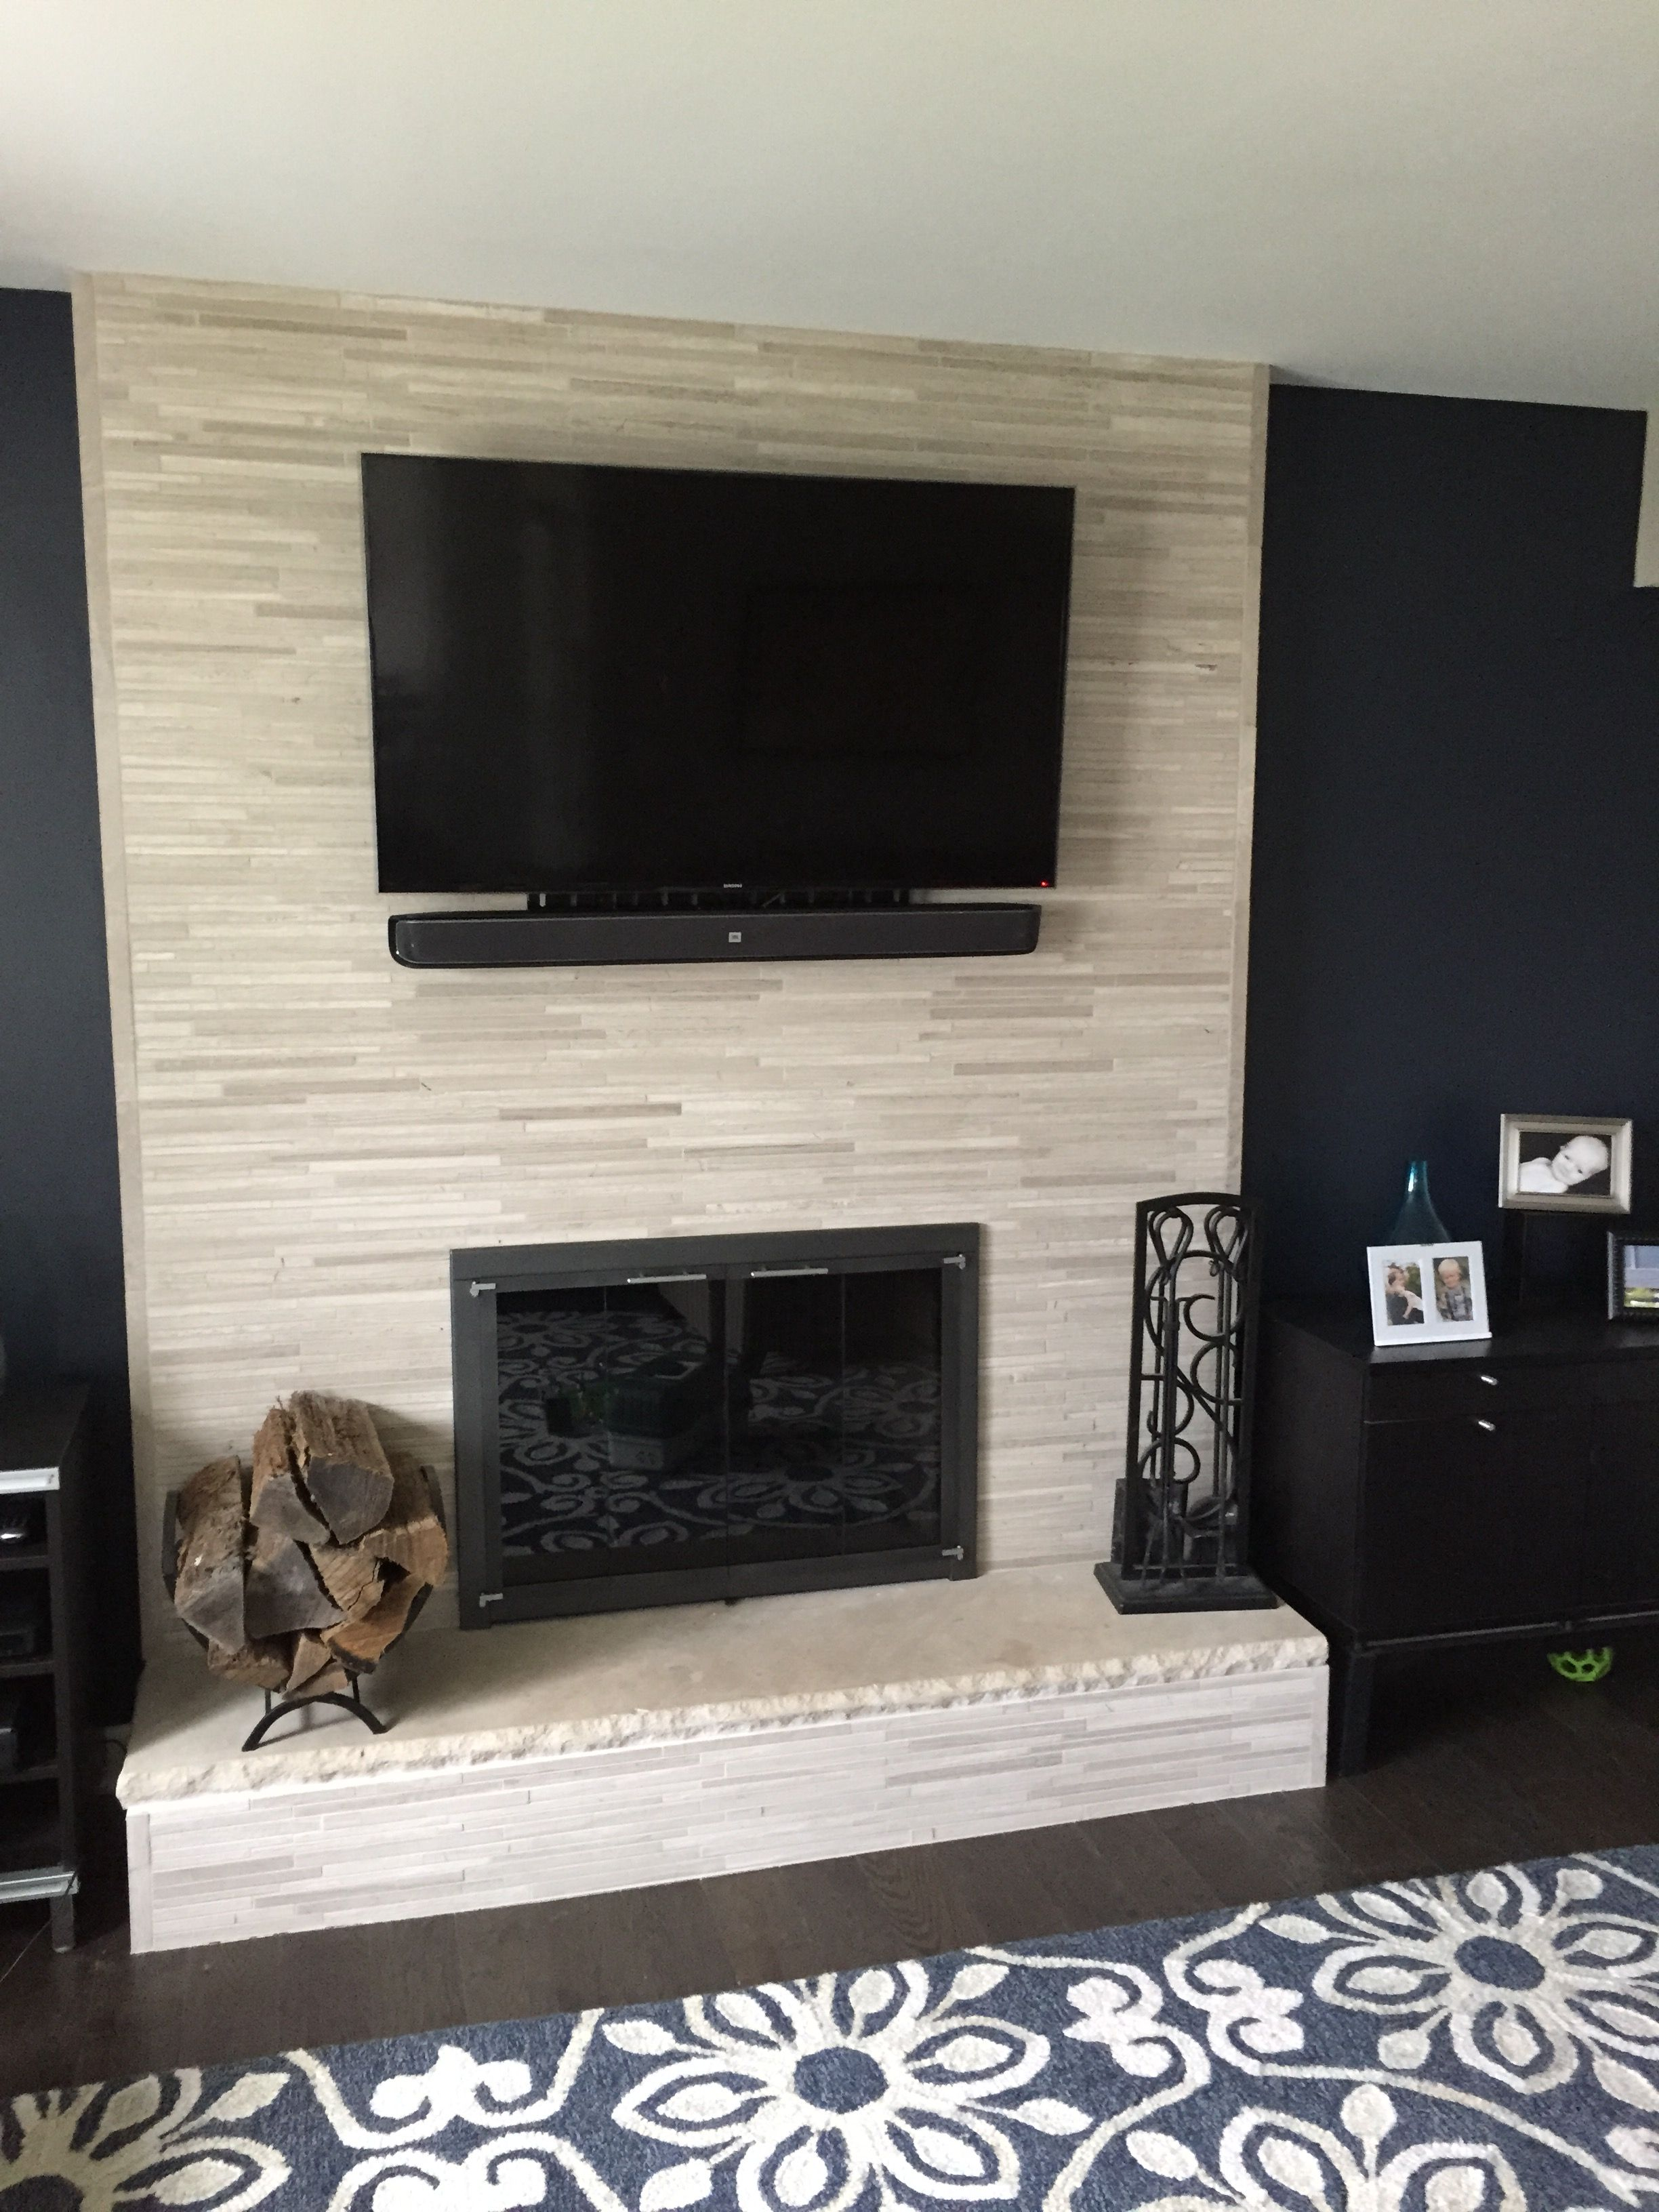 Brick Tile Fireplace Beautiful Our Old Fireplace Was 80 S 90 S Brick Veneer to Give It An